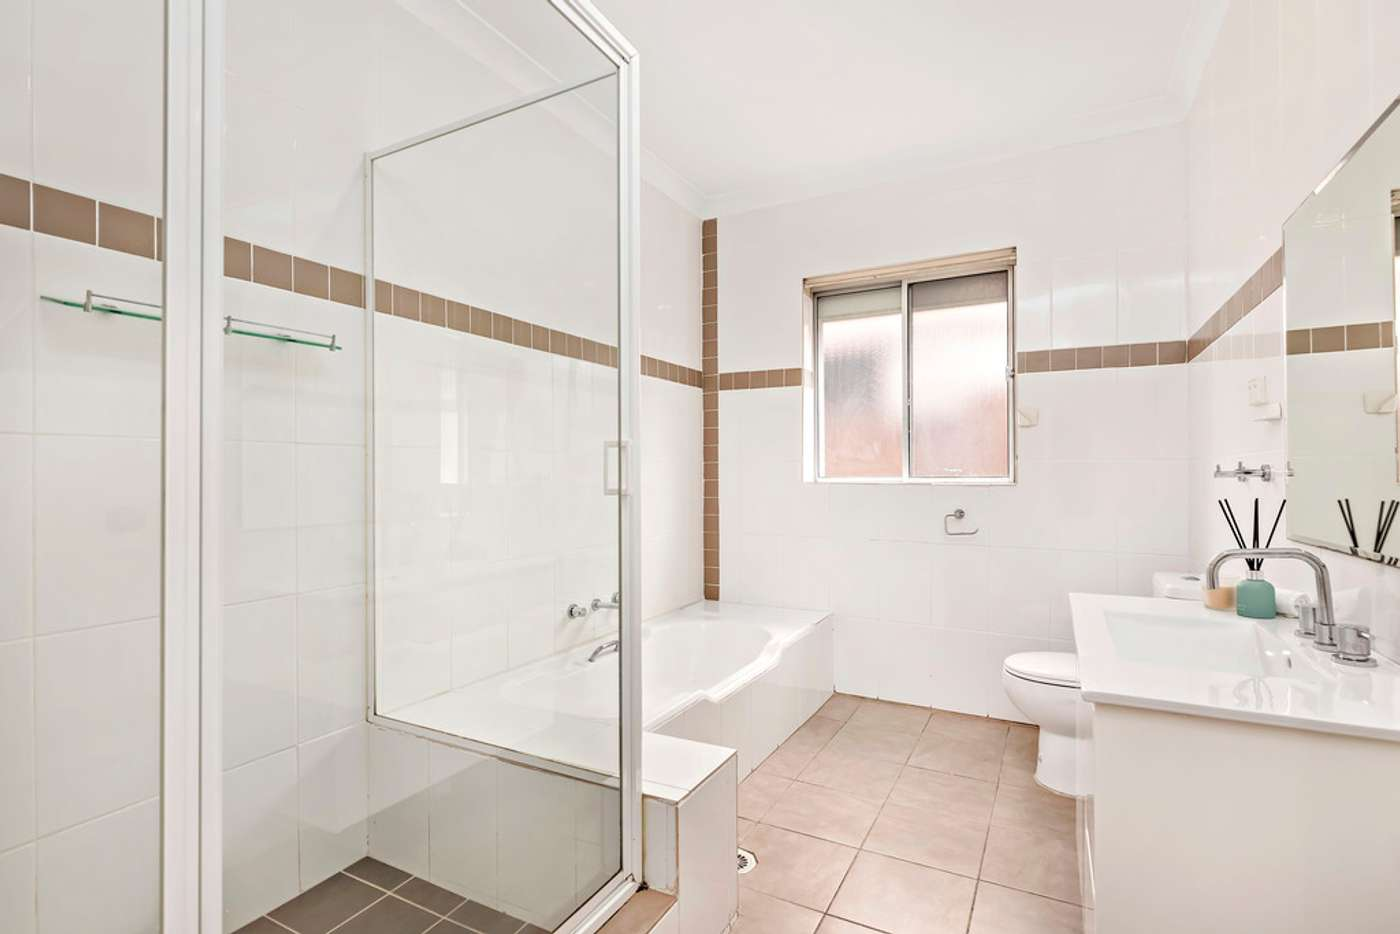 Sixth view of Homely house listing, 19 John Street, Ashfield NSW 2131